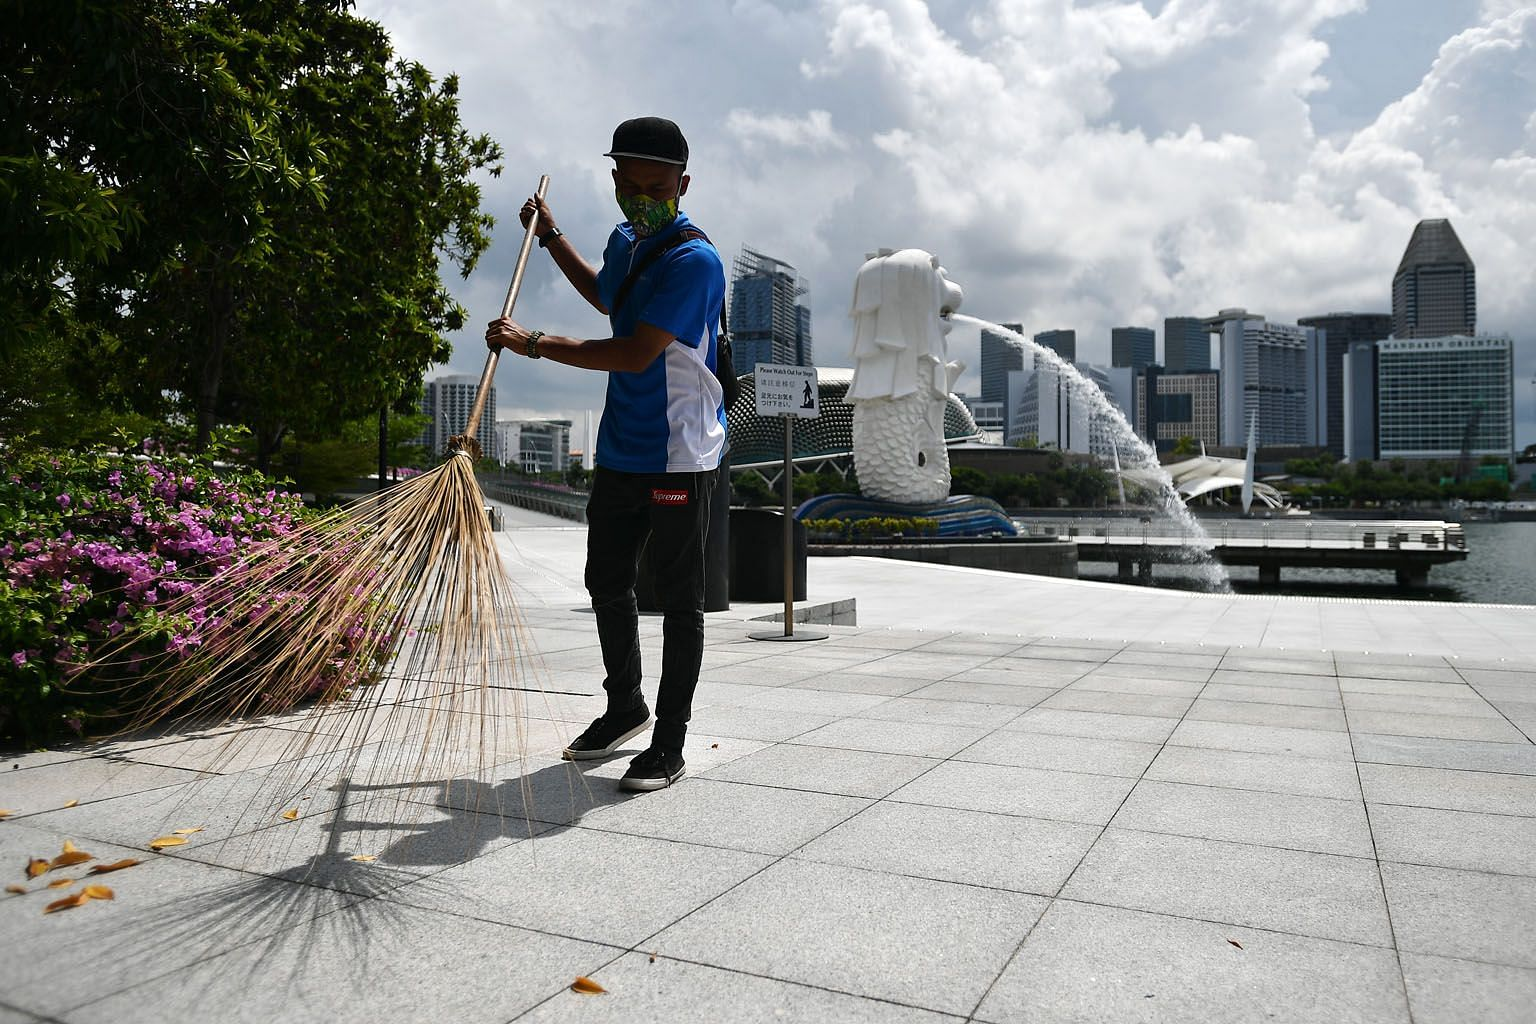 Cleaner Hamedi Hamzan at work at the deserted Merlion Park on Thursday. Visitor arrivals fell by half in February compared with the year before, and the numbers for last month are expected to hit new lows.